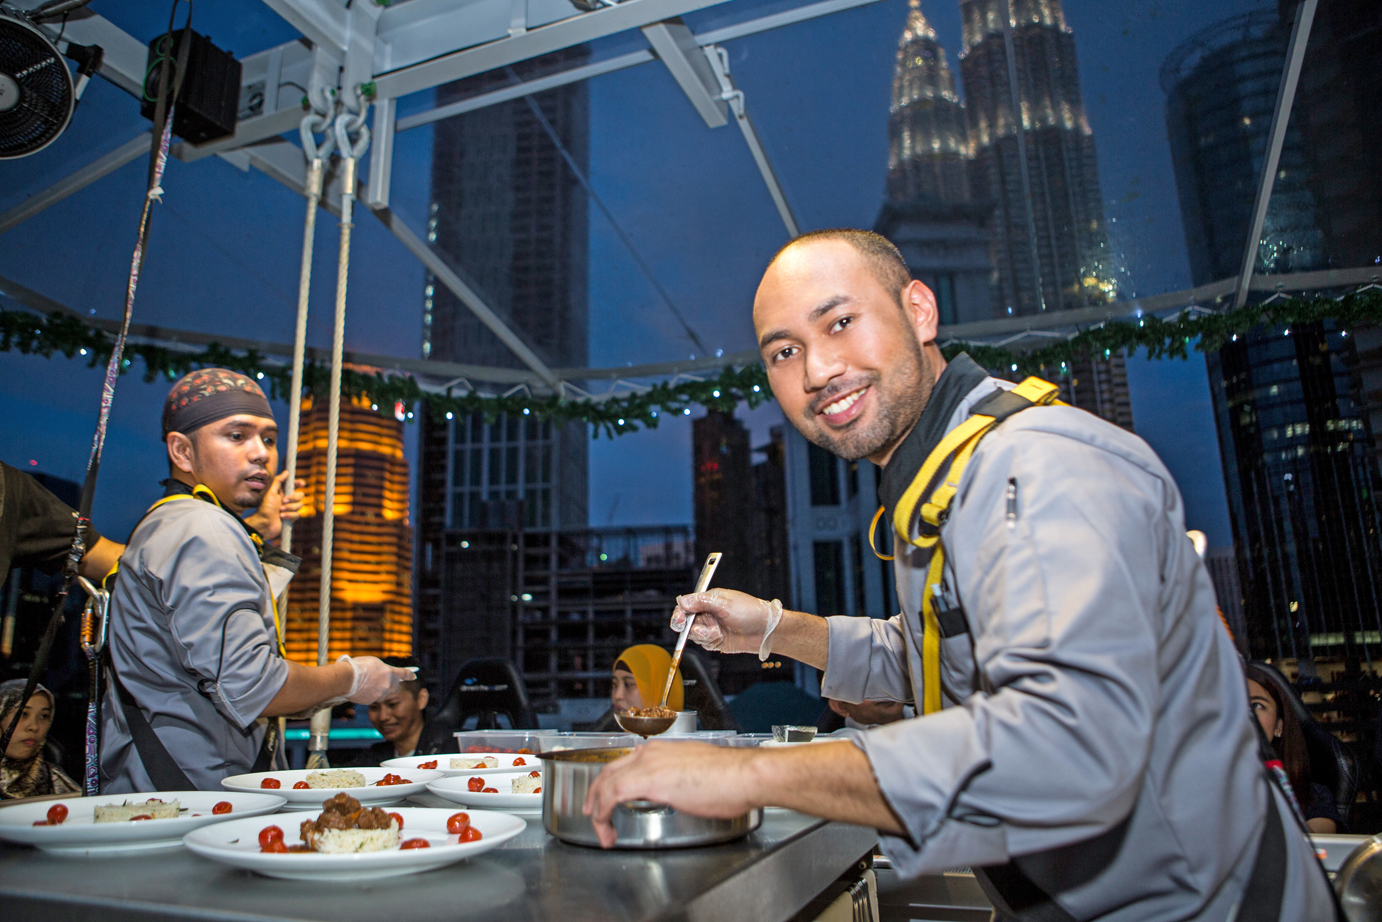 Dinner in the sky malaysia by teaffani catering 1